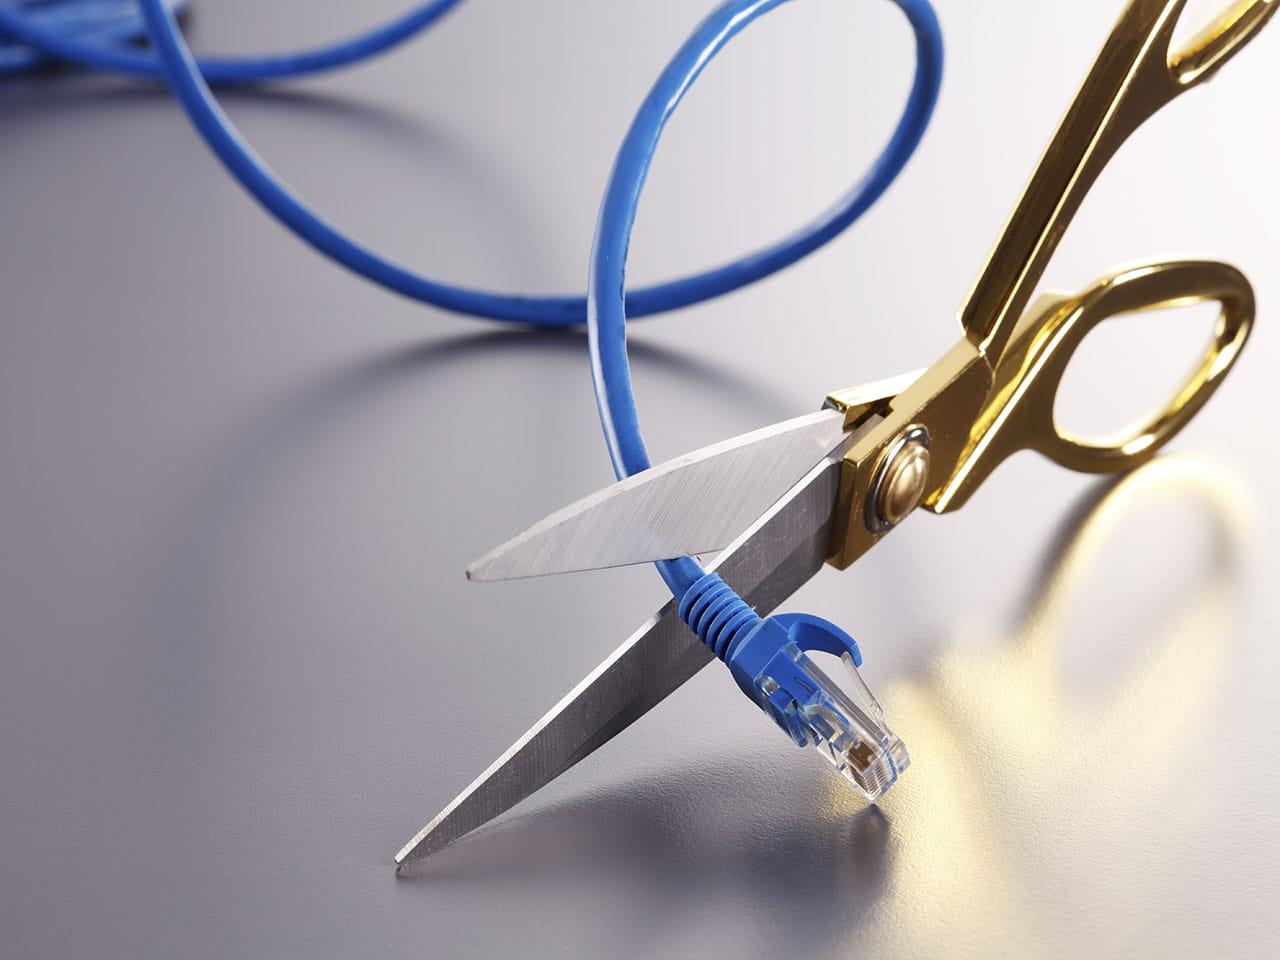 Cable being cut by scissors